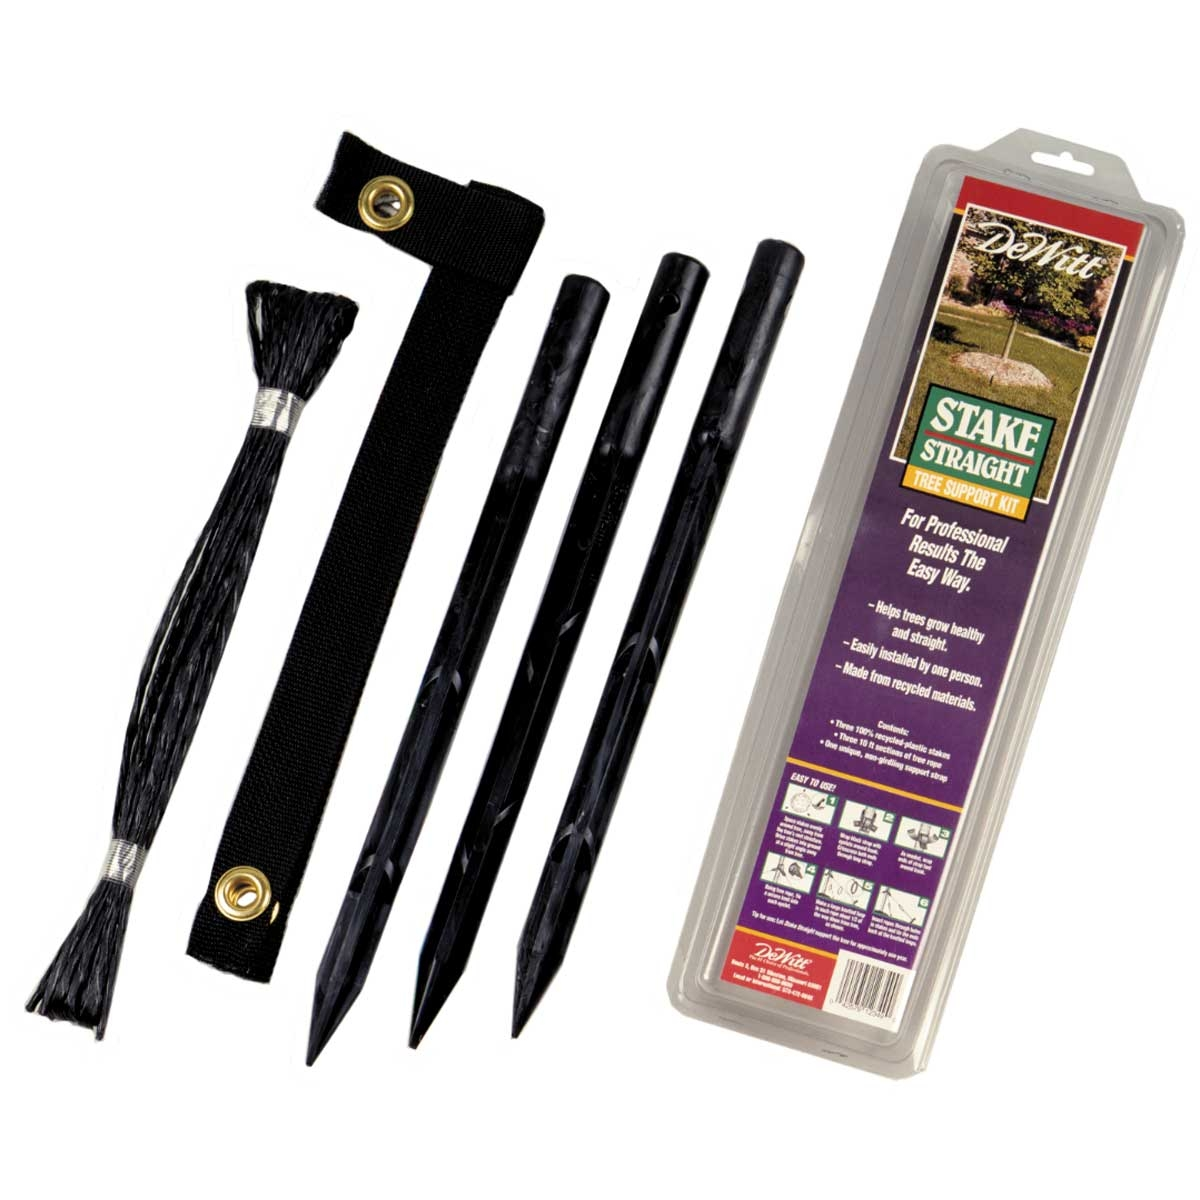 DeWitt Stake Straight Tree Support Kit